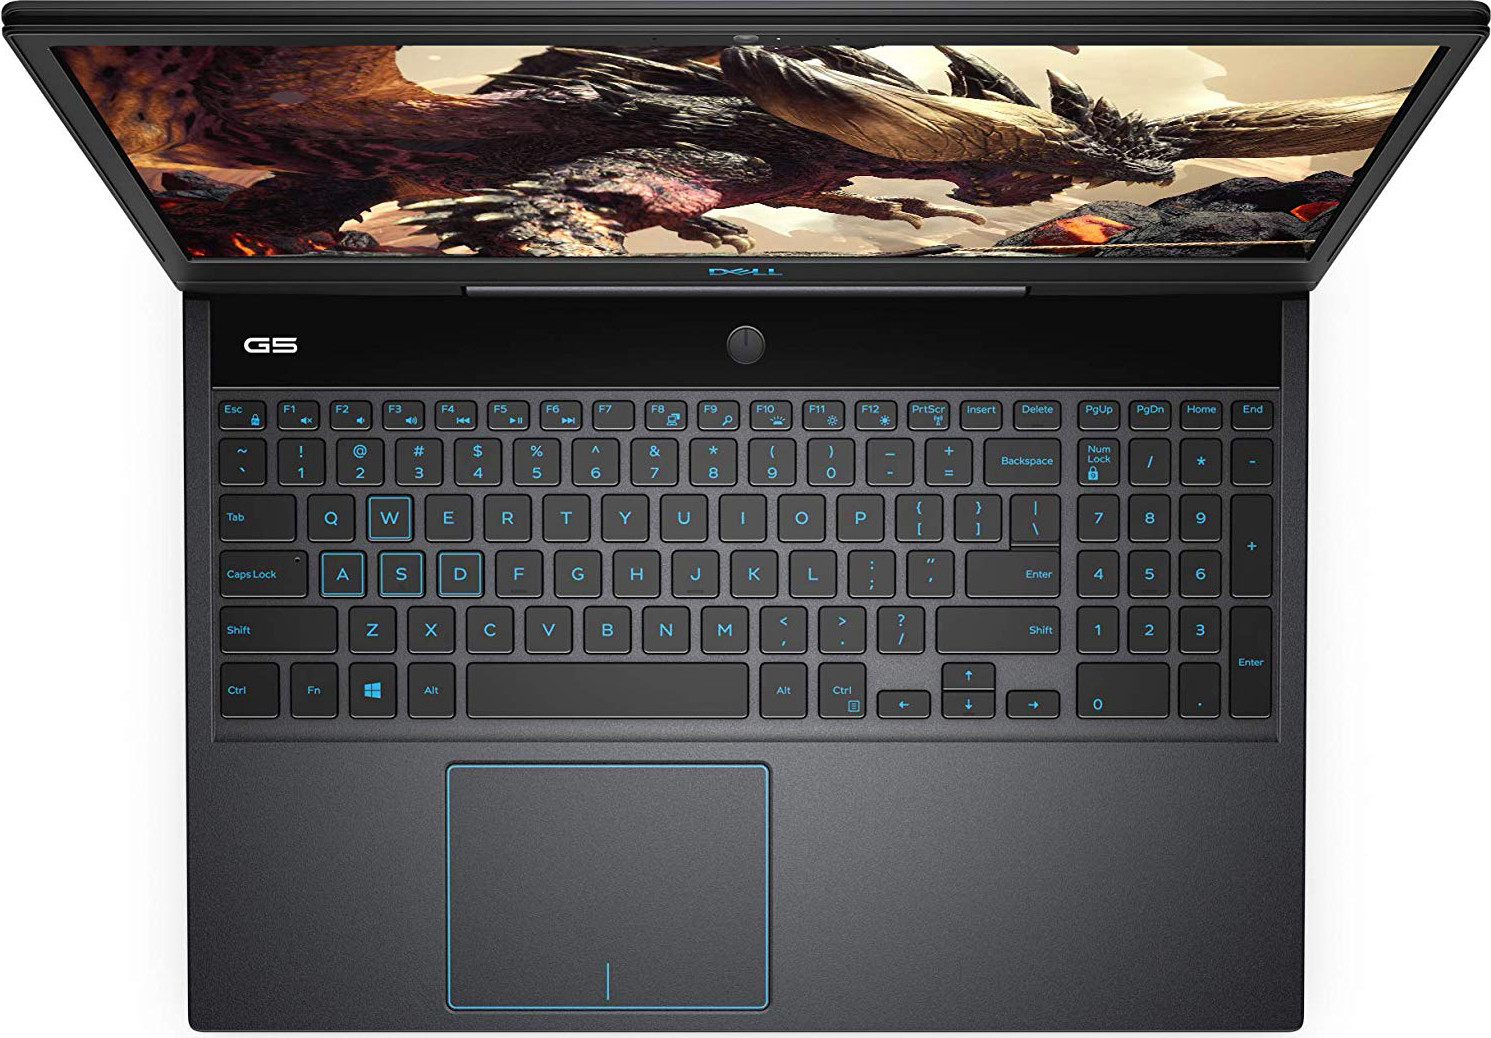 Buy Dell G5 15 Gaming Laptop Windows 10 Home 9th Gen Intel Core I7 9750h Nvidia Gtx 1650 15 6 Fhd Lcd Screen 256gb Ssd And 1tb Sata 16 Gb Ram G5590 7679blk Pus Daily Laptop